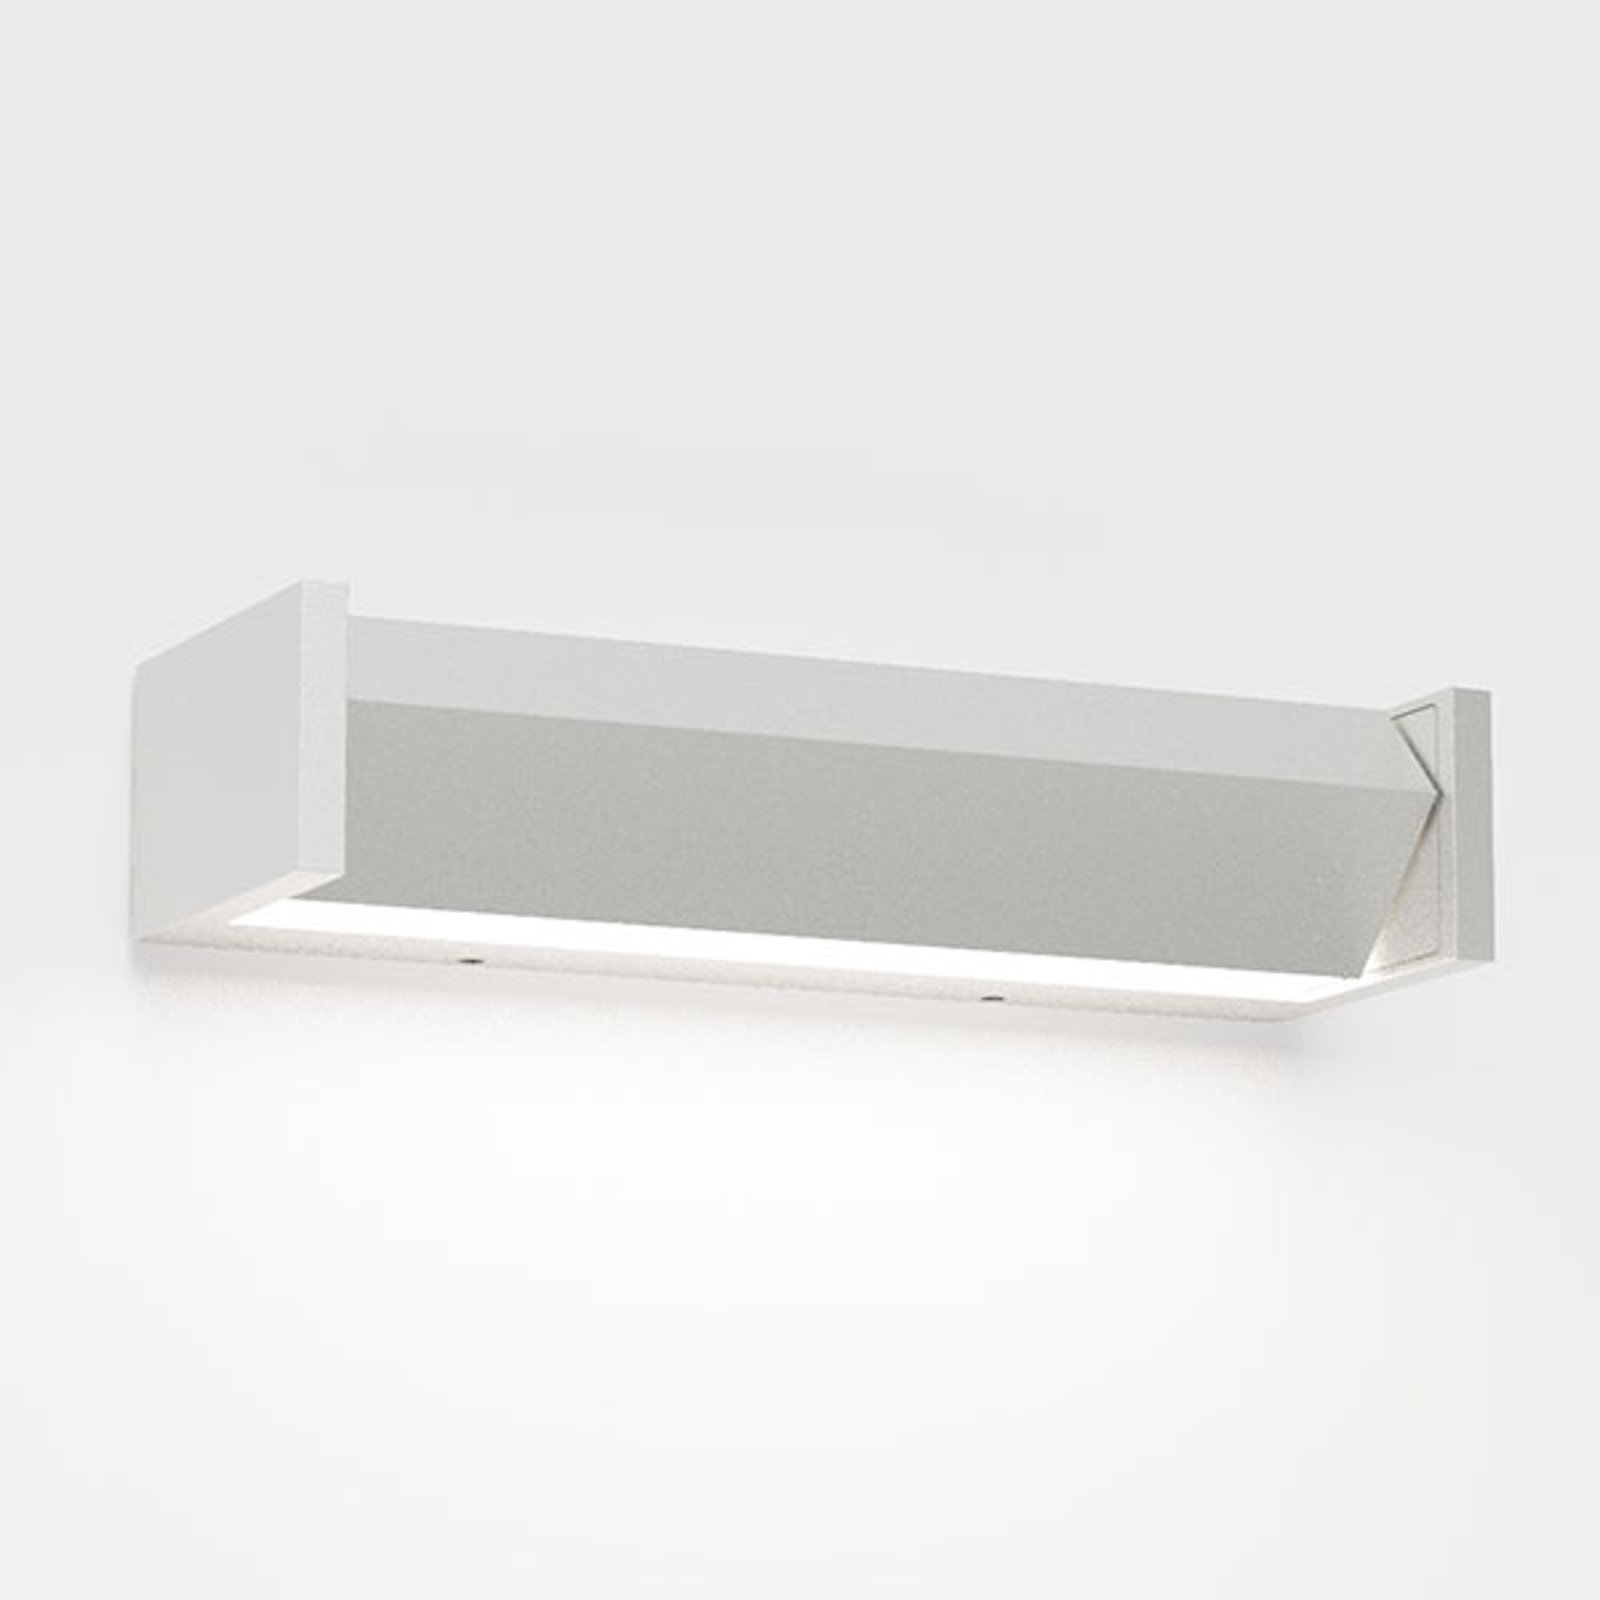 IP44.de Slat One LED buitenwandlamp, wit